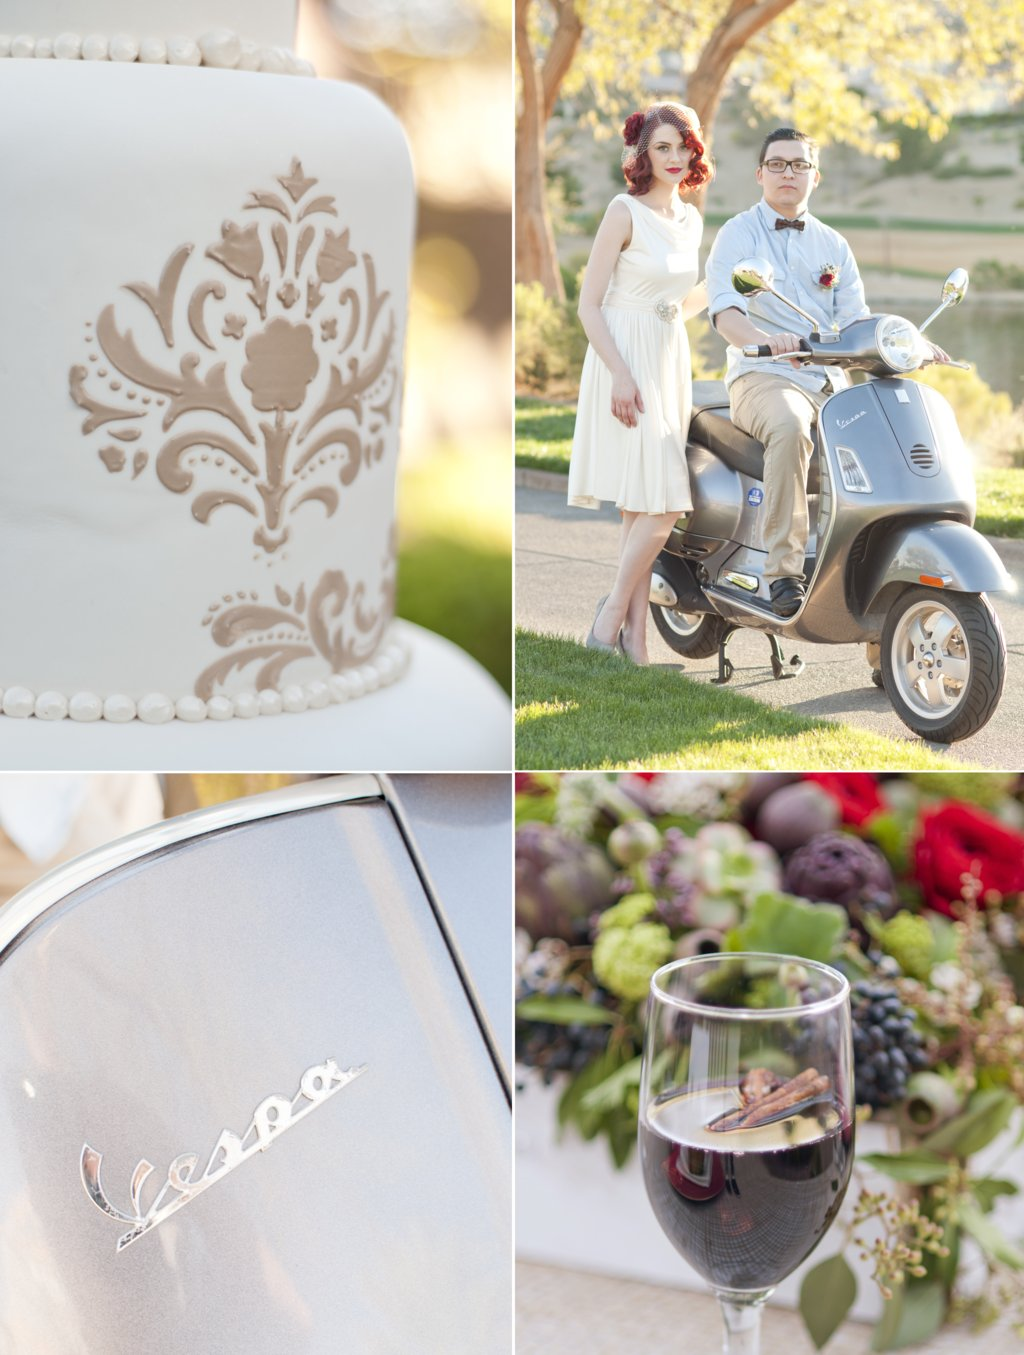 romantic wedding inspiration for fall outdoor weddings Parisian inspired 2